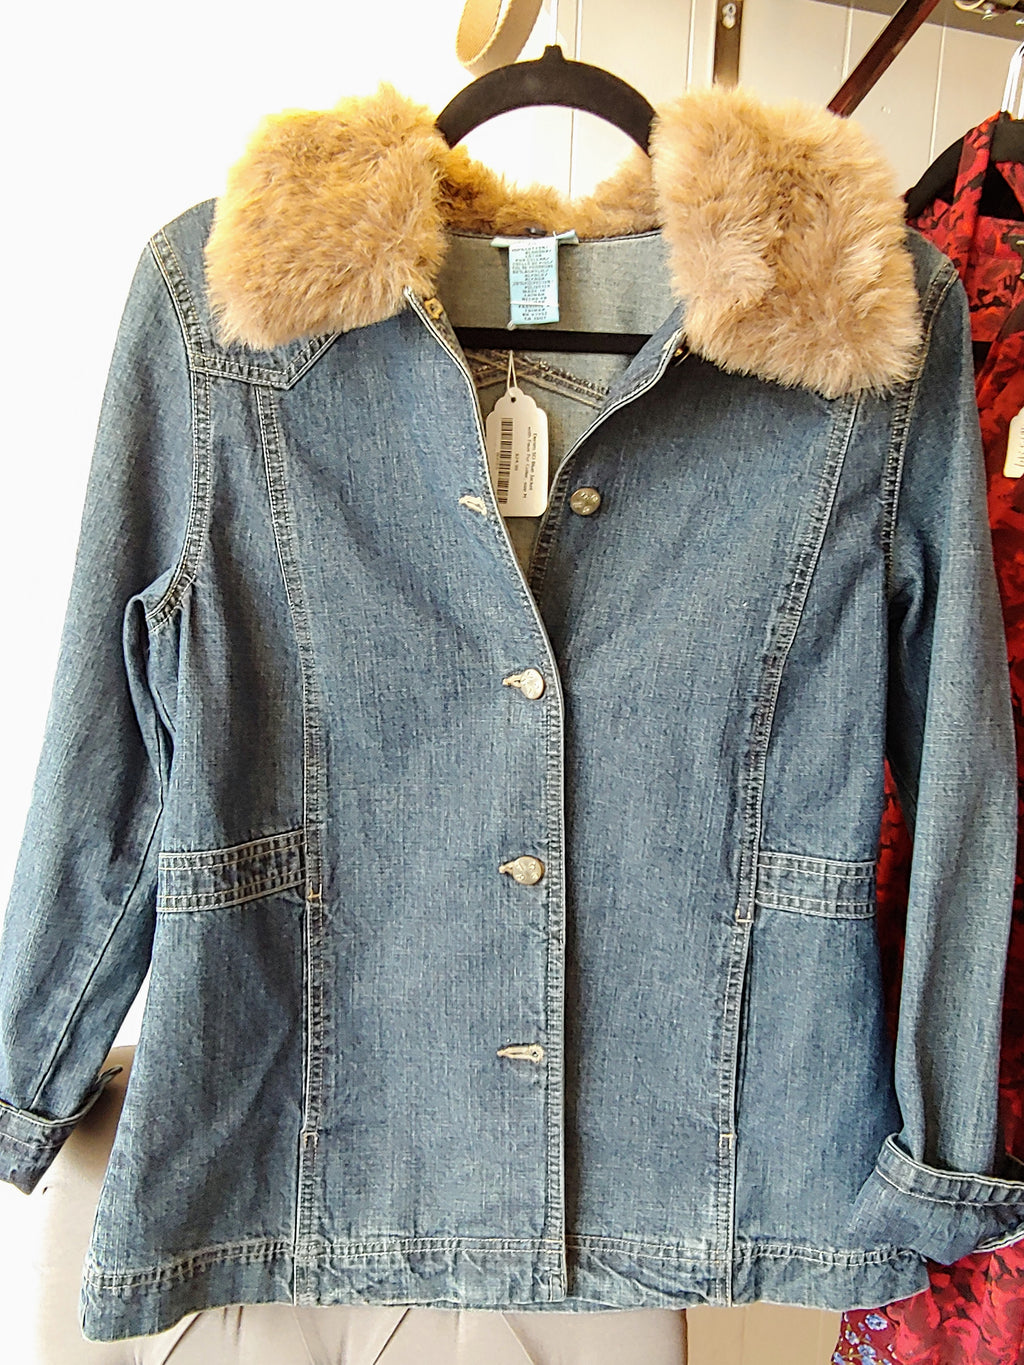 Denim SO Blue Jacket with Faux Fur Collar, size M